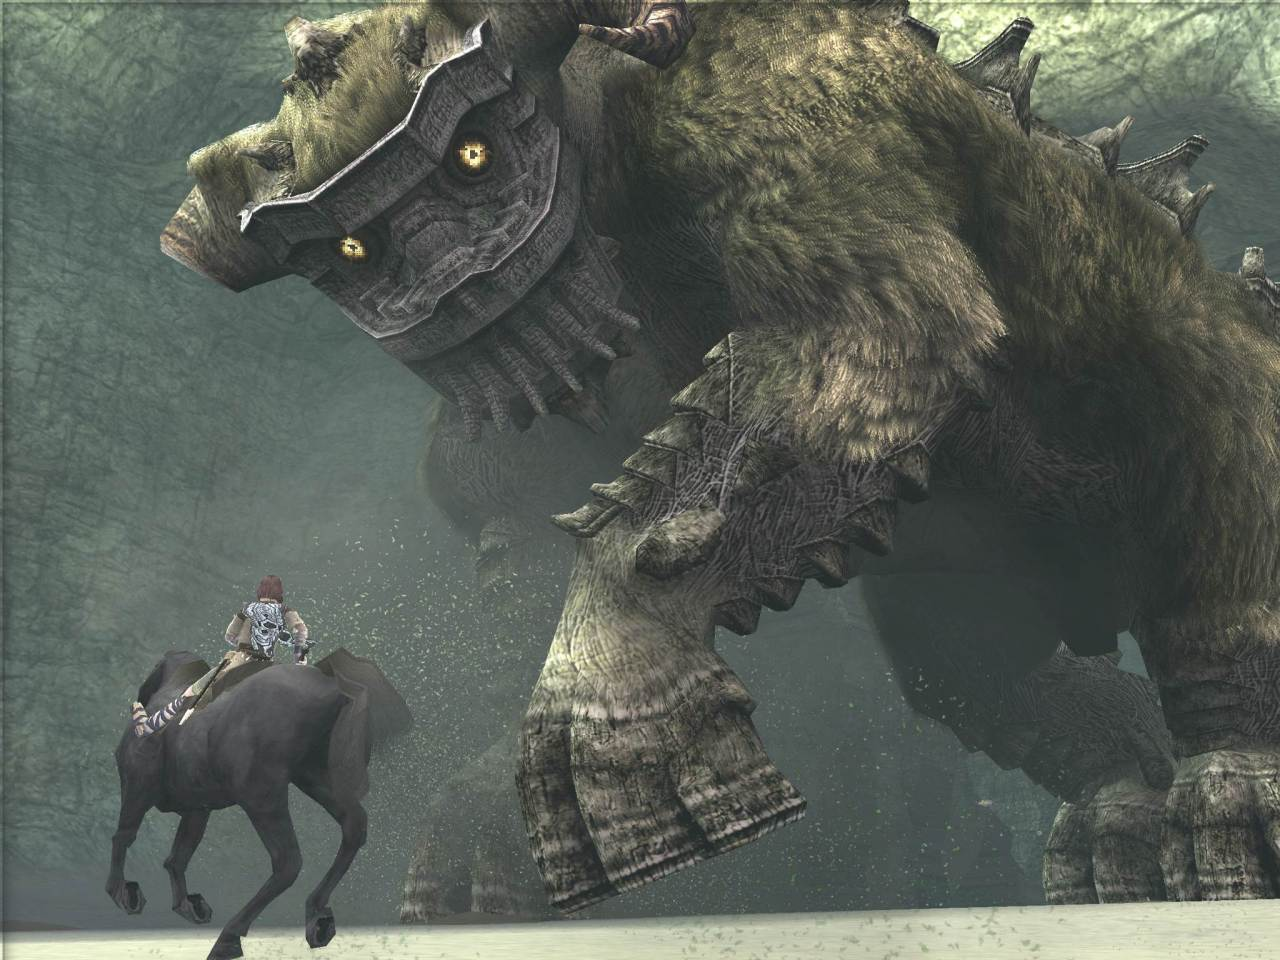 """shadow-of-the-colossus """"width ="""" 1280 """"height ="""" 960 """"srcset ="""" https://www.funzen.net/wp-content/uploads/2020/03/1583466325_213_the-future-of-mobile-games.jpg 1280w, https://elandroidelibre.elespanol.com/wp-content/uploads/2016/09/shadow-of-the-colossus-450x338.jpg 450w, https://elandroidelibre.elespanol.com/wp-content/uploads /2016/09/shadow-of-the-colossus-768x576.jpg 768w, https://elandroidelibre.elespanol.com/wp-content/uploads/2016/09/shadow-of-the-colossus-733x550.jpg 733w """"sizes ="""" (max-width: 1280px) 100vw, 1280px """"/></p> <p>But with those specifications, the games should be much lower than the current ones, right? Negative, the Playstation 2 <strong>refined the three-dimensionality formula</strong> who had proposed consoles as their predecessor and the Nintendo 64 taking it to a new level.</p><div class='code-block code-block-9' style='margin: 8px auto; text-align: center; display: block; clear: both;'> <div data-ad="""